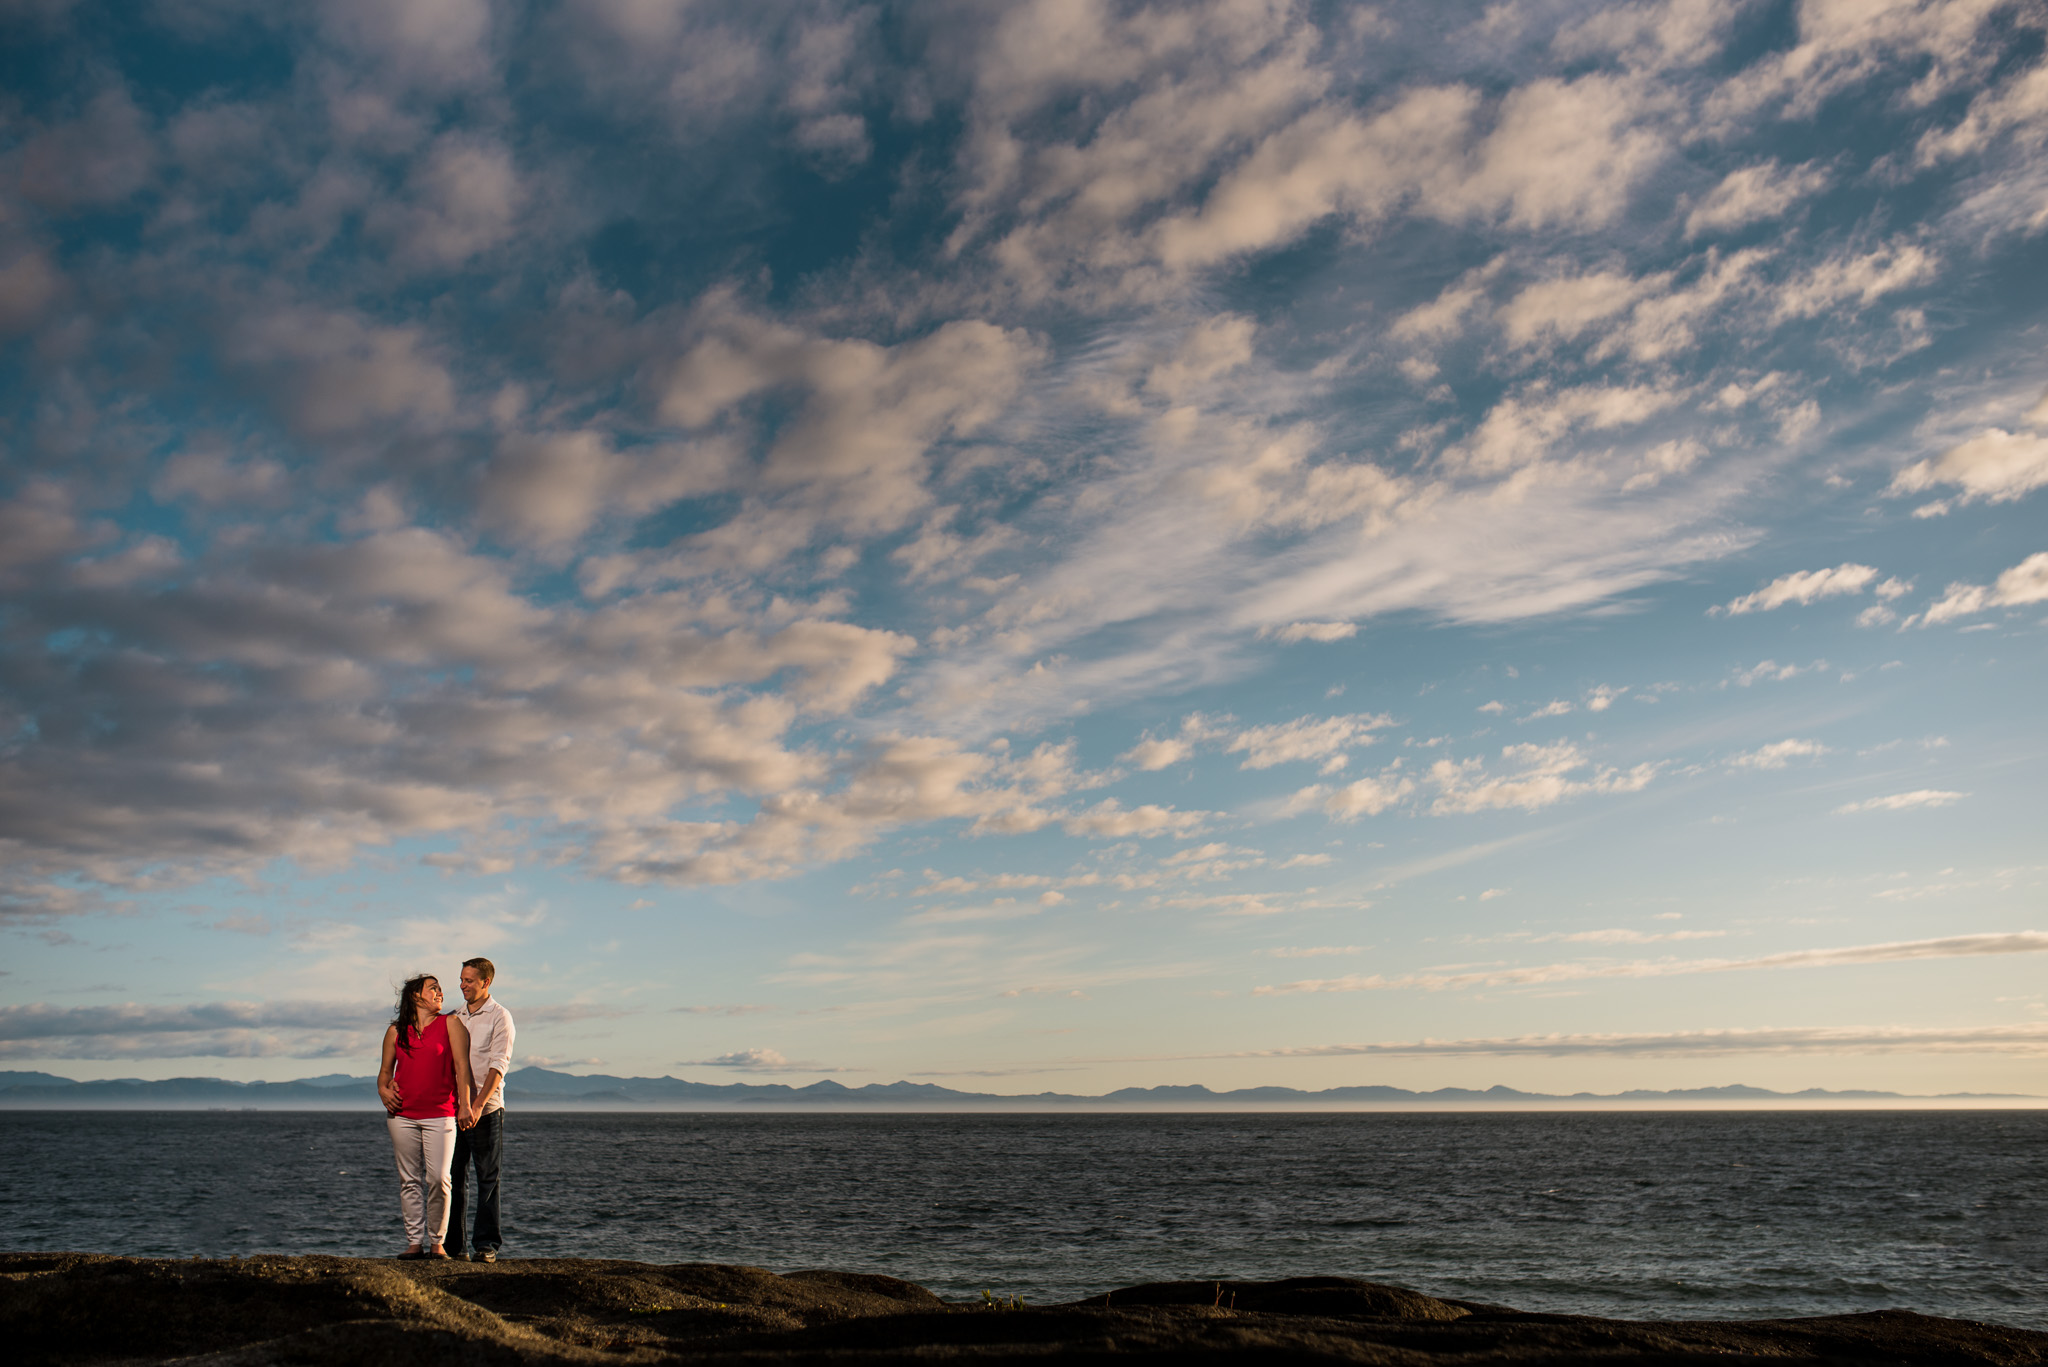 victoria-wedding-photographer-sandcut-beach-engagement-13.jpg